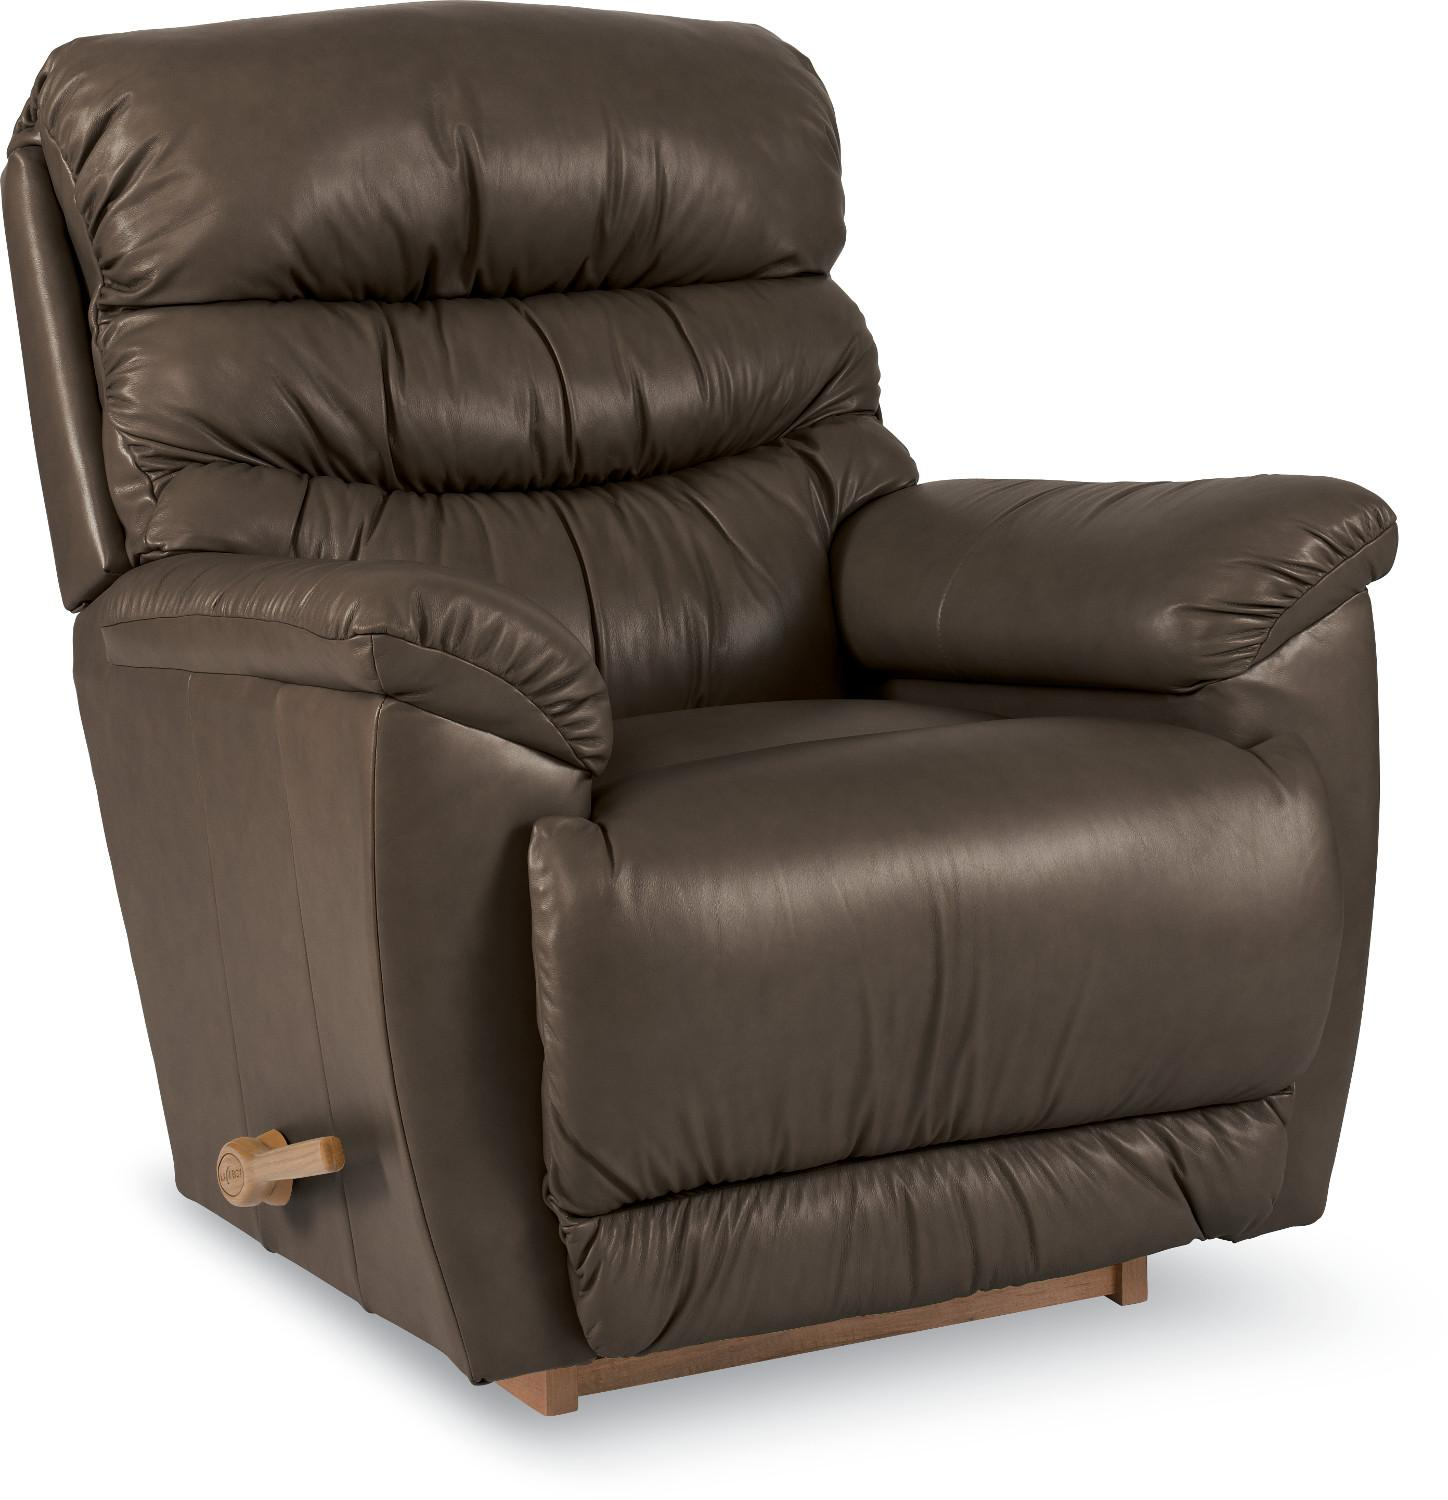 Recliners joshua reclina rocker reclining chair by la z for Berkline chaise recliner